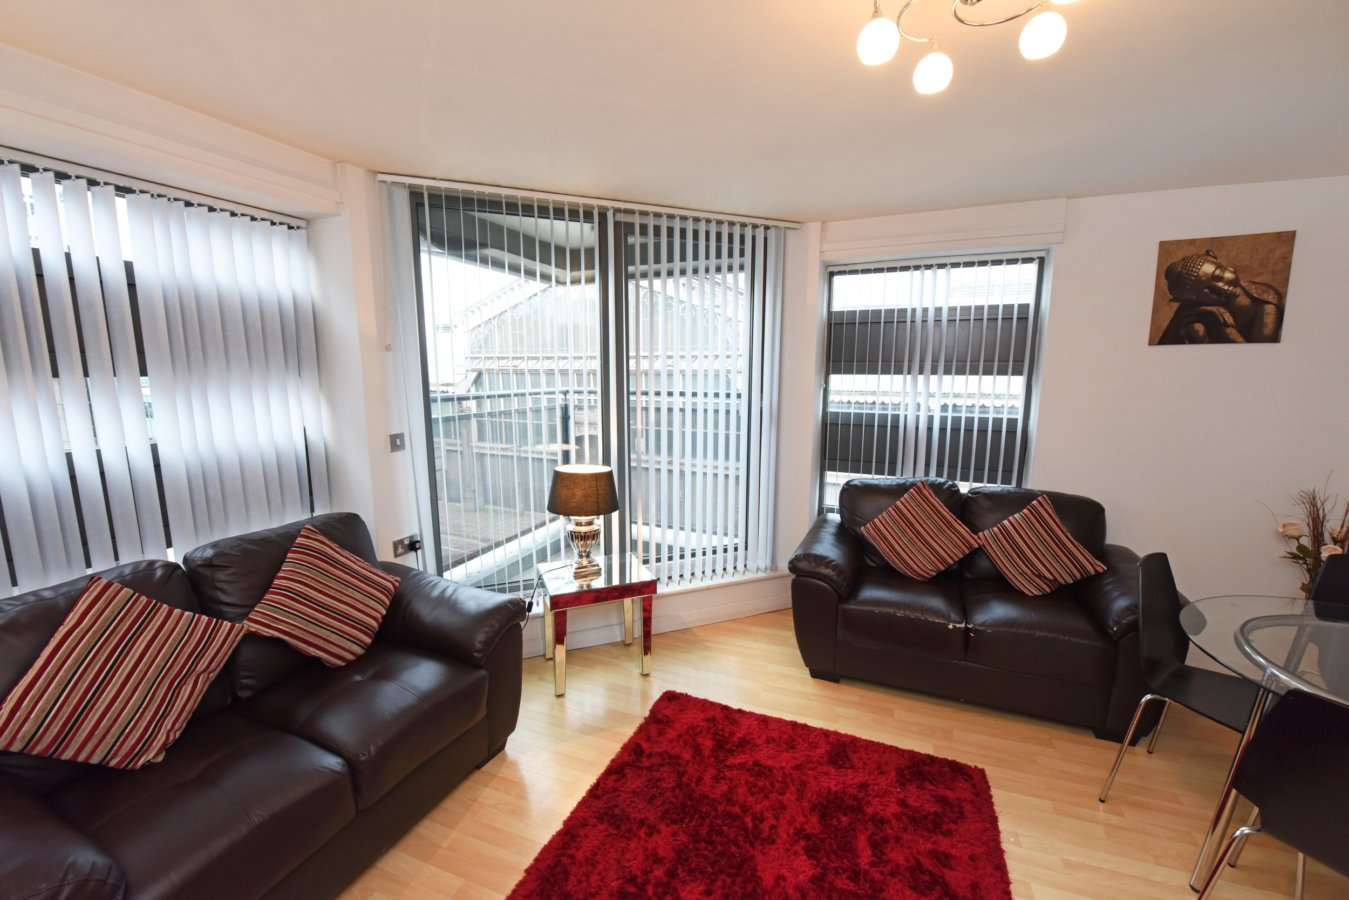 City Centre Serviced Apartments in Manchester by Dreamhouse